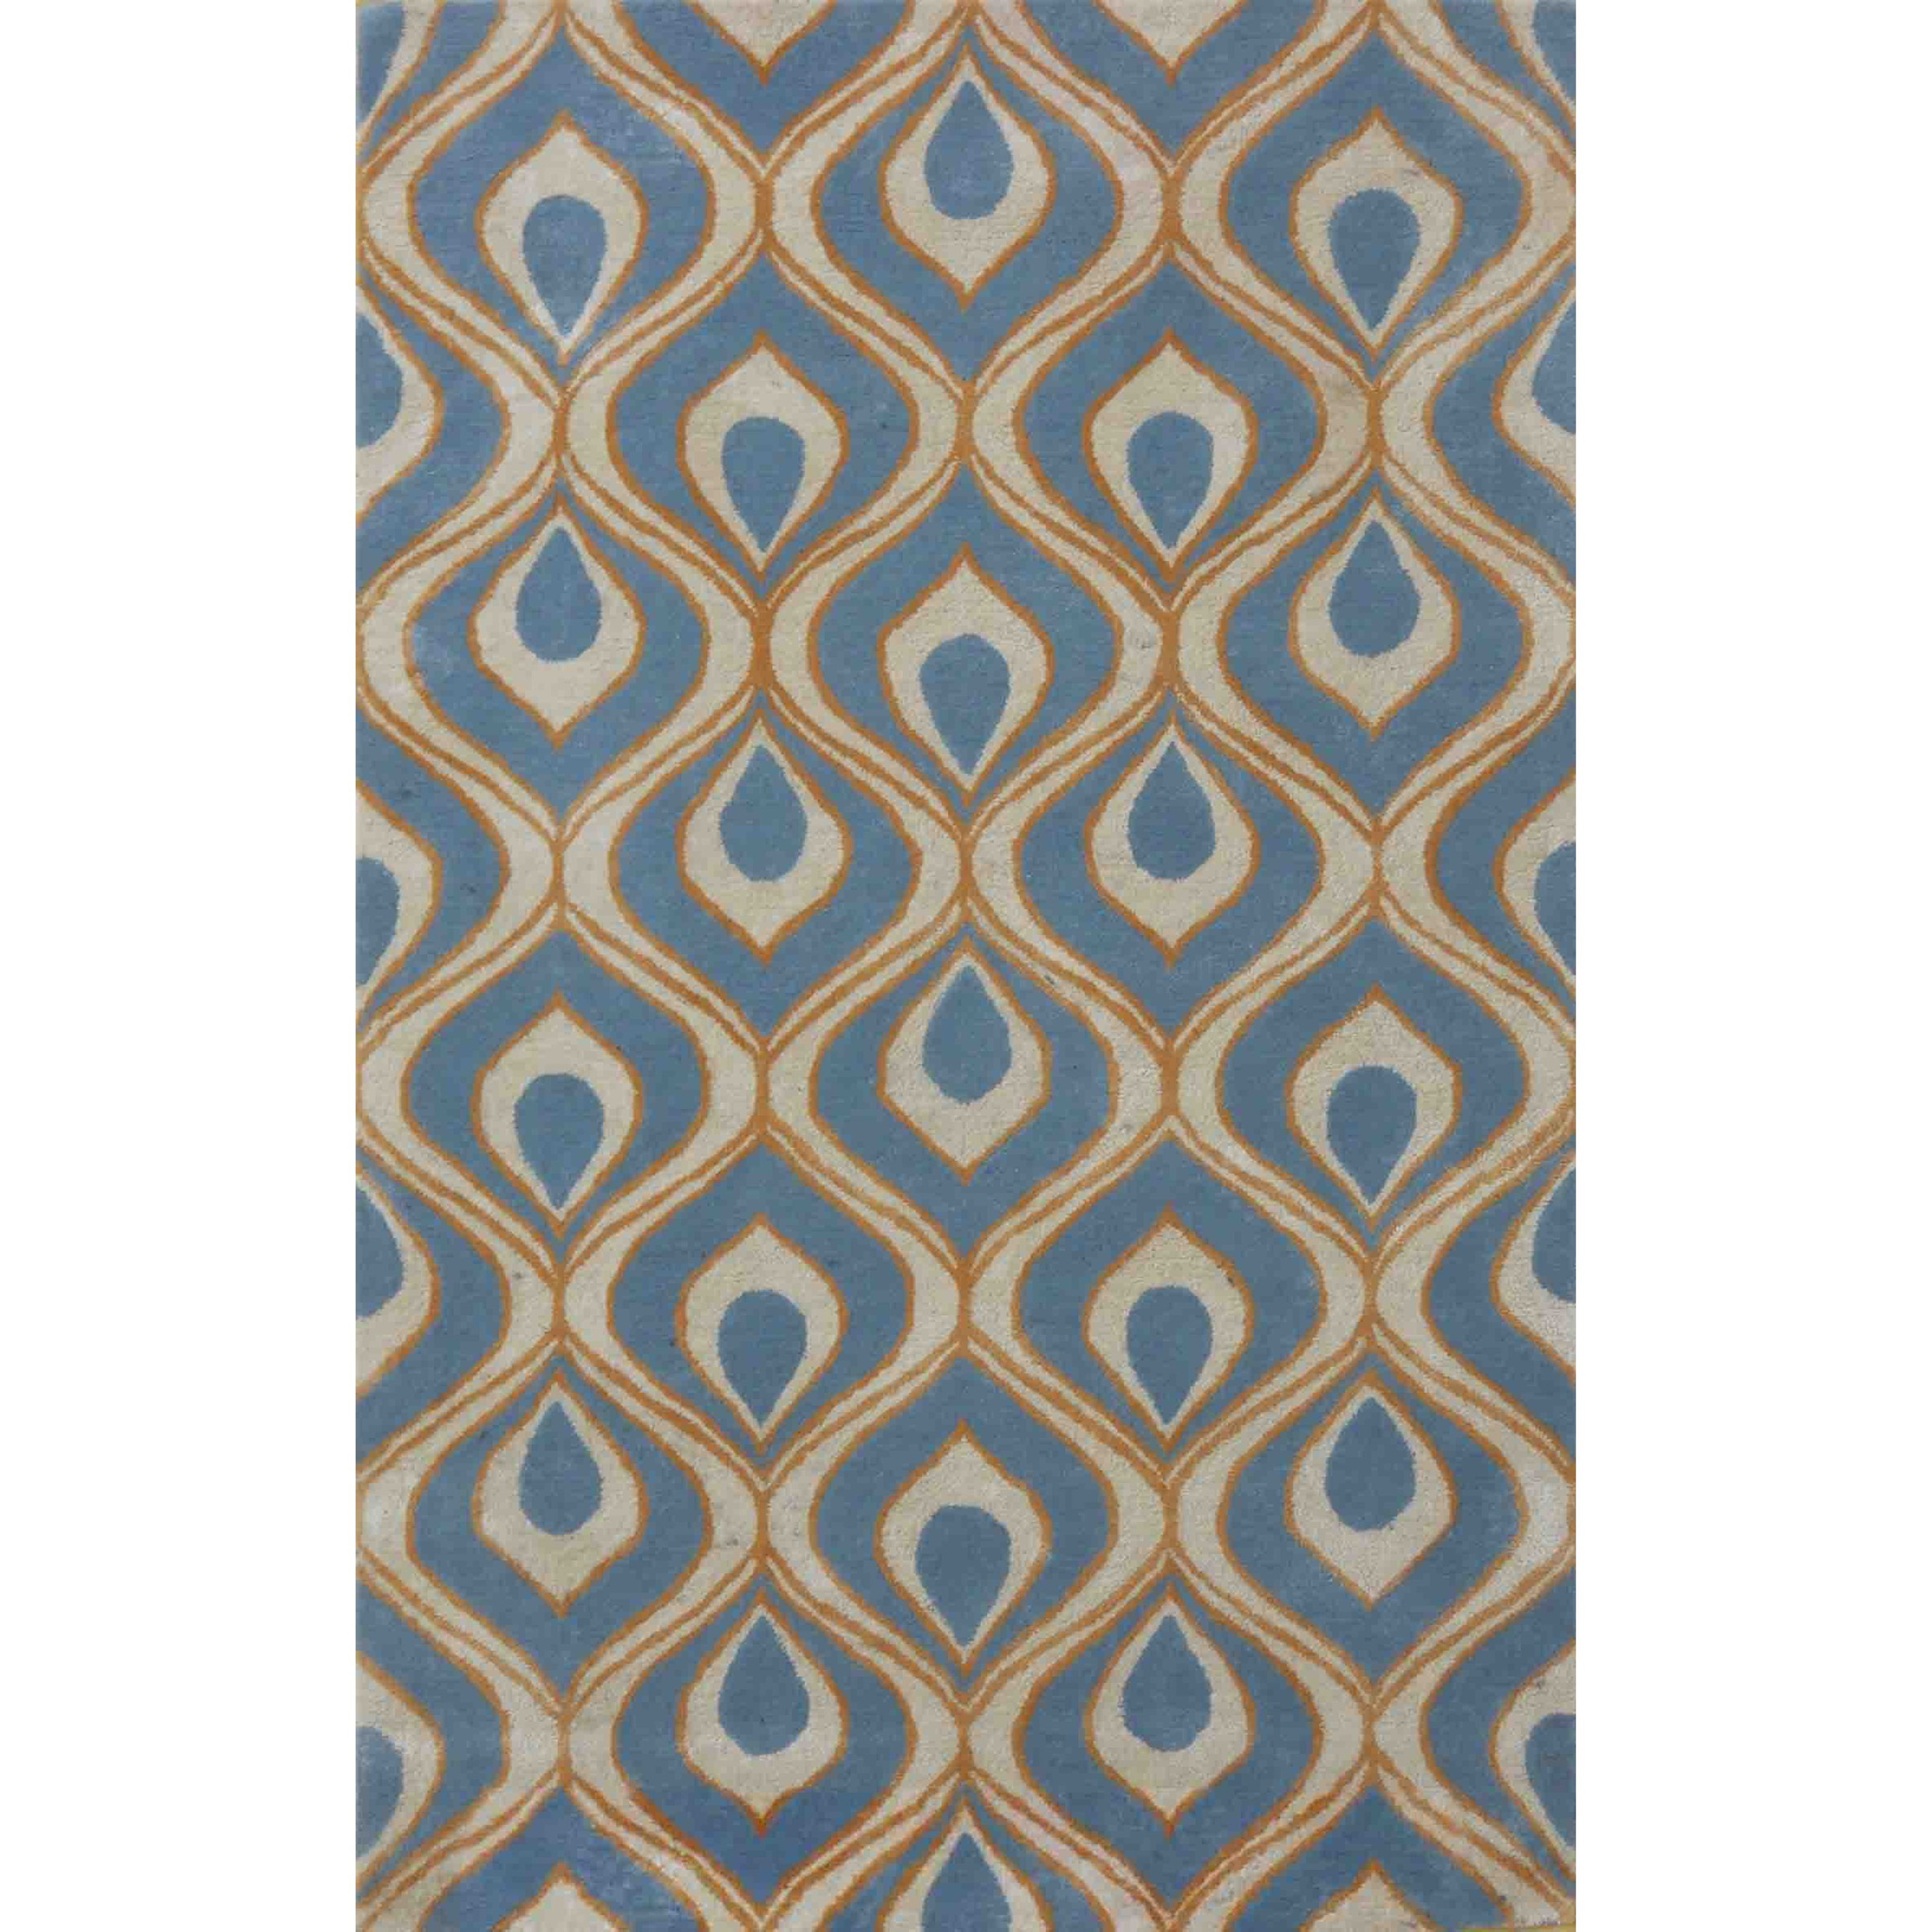 "2'6"" X 8' Blue Eye Of The Peacock Area Rug"